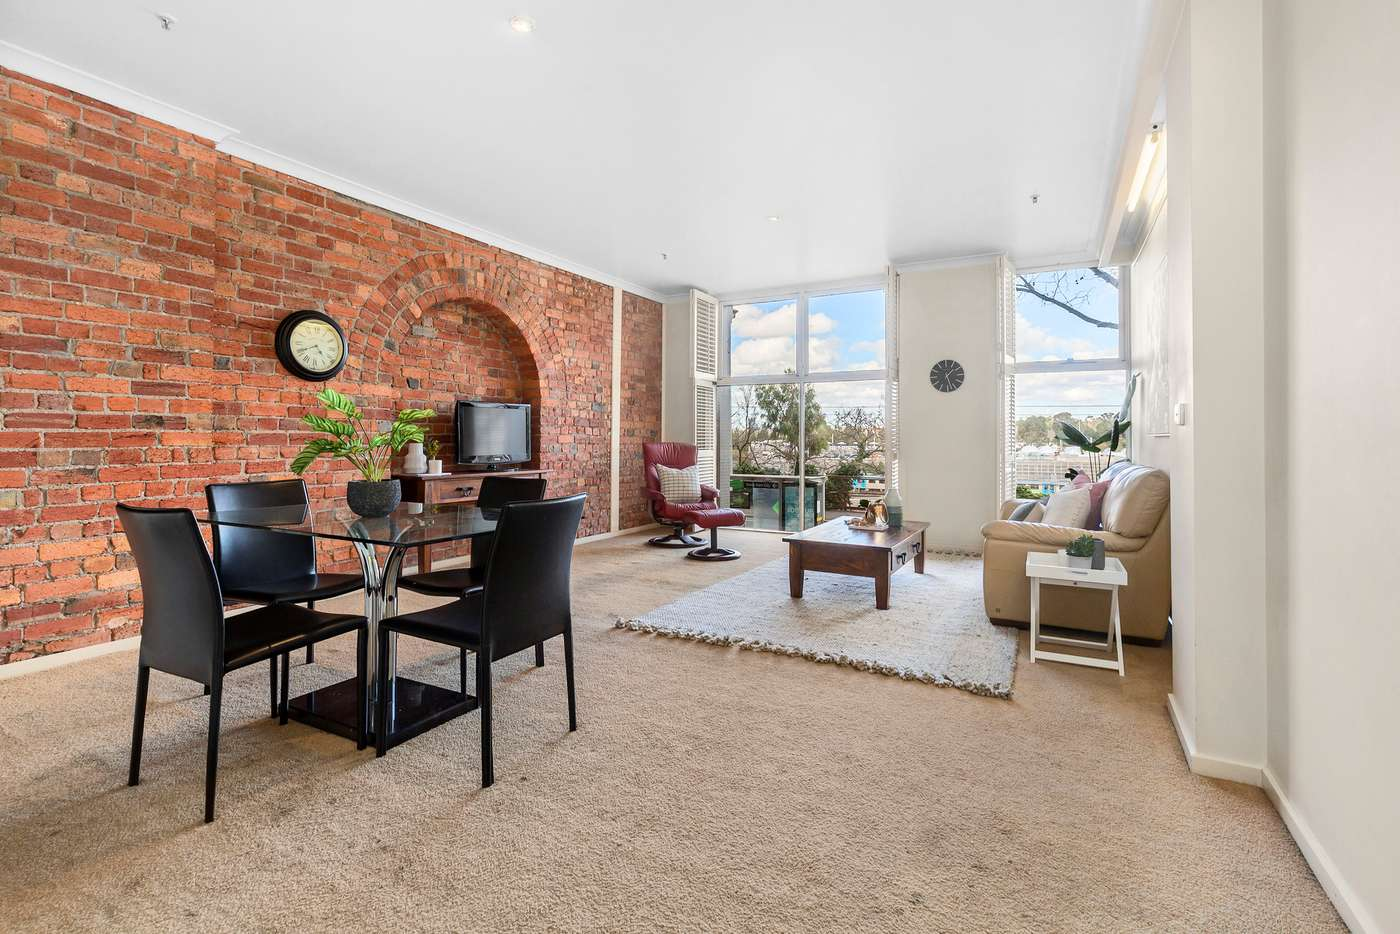 Main view of Homely apartment listing, 102/130 Flinders Street, Melbourne VIC 3000